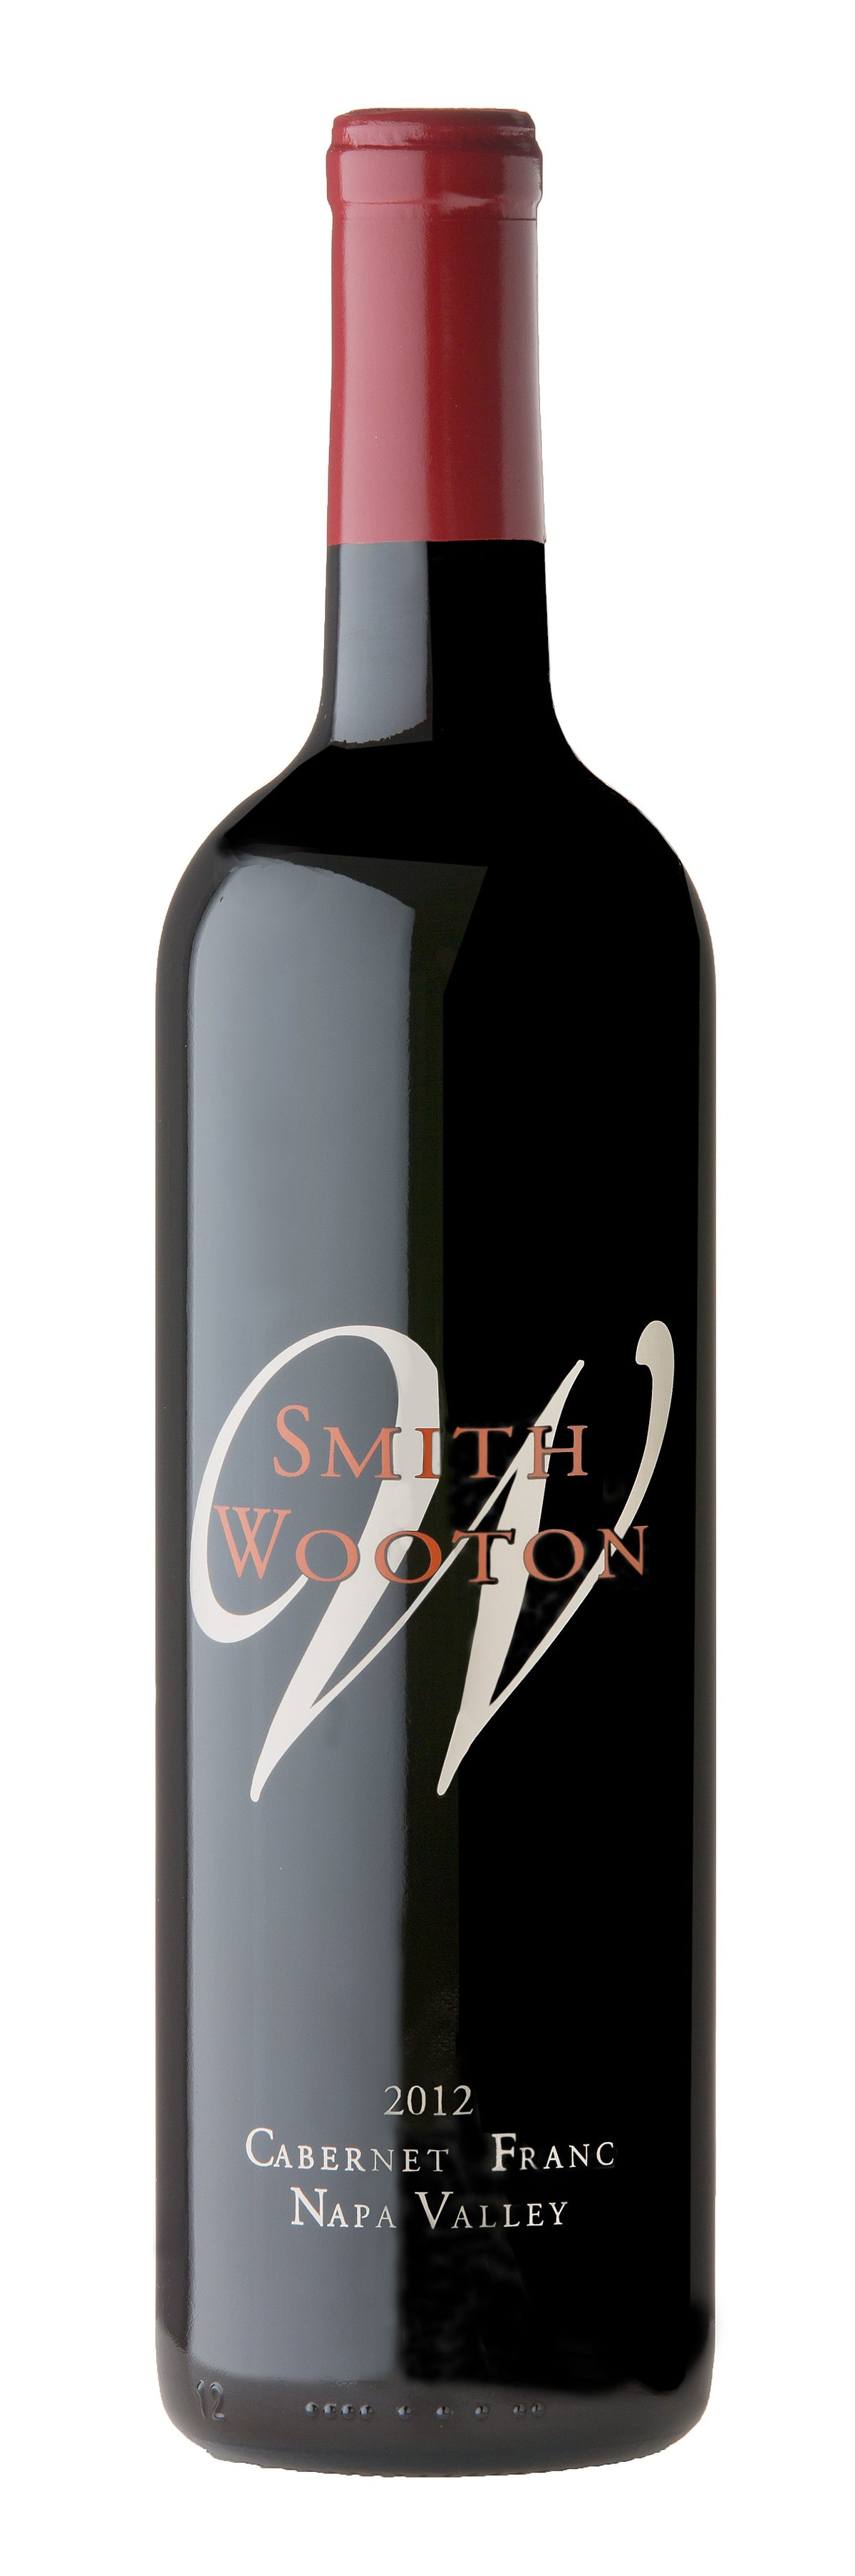 2012 Smith Wooten Cabernet Franc Napa Valley